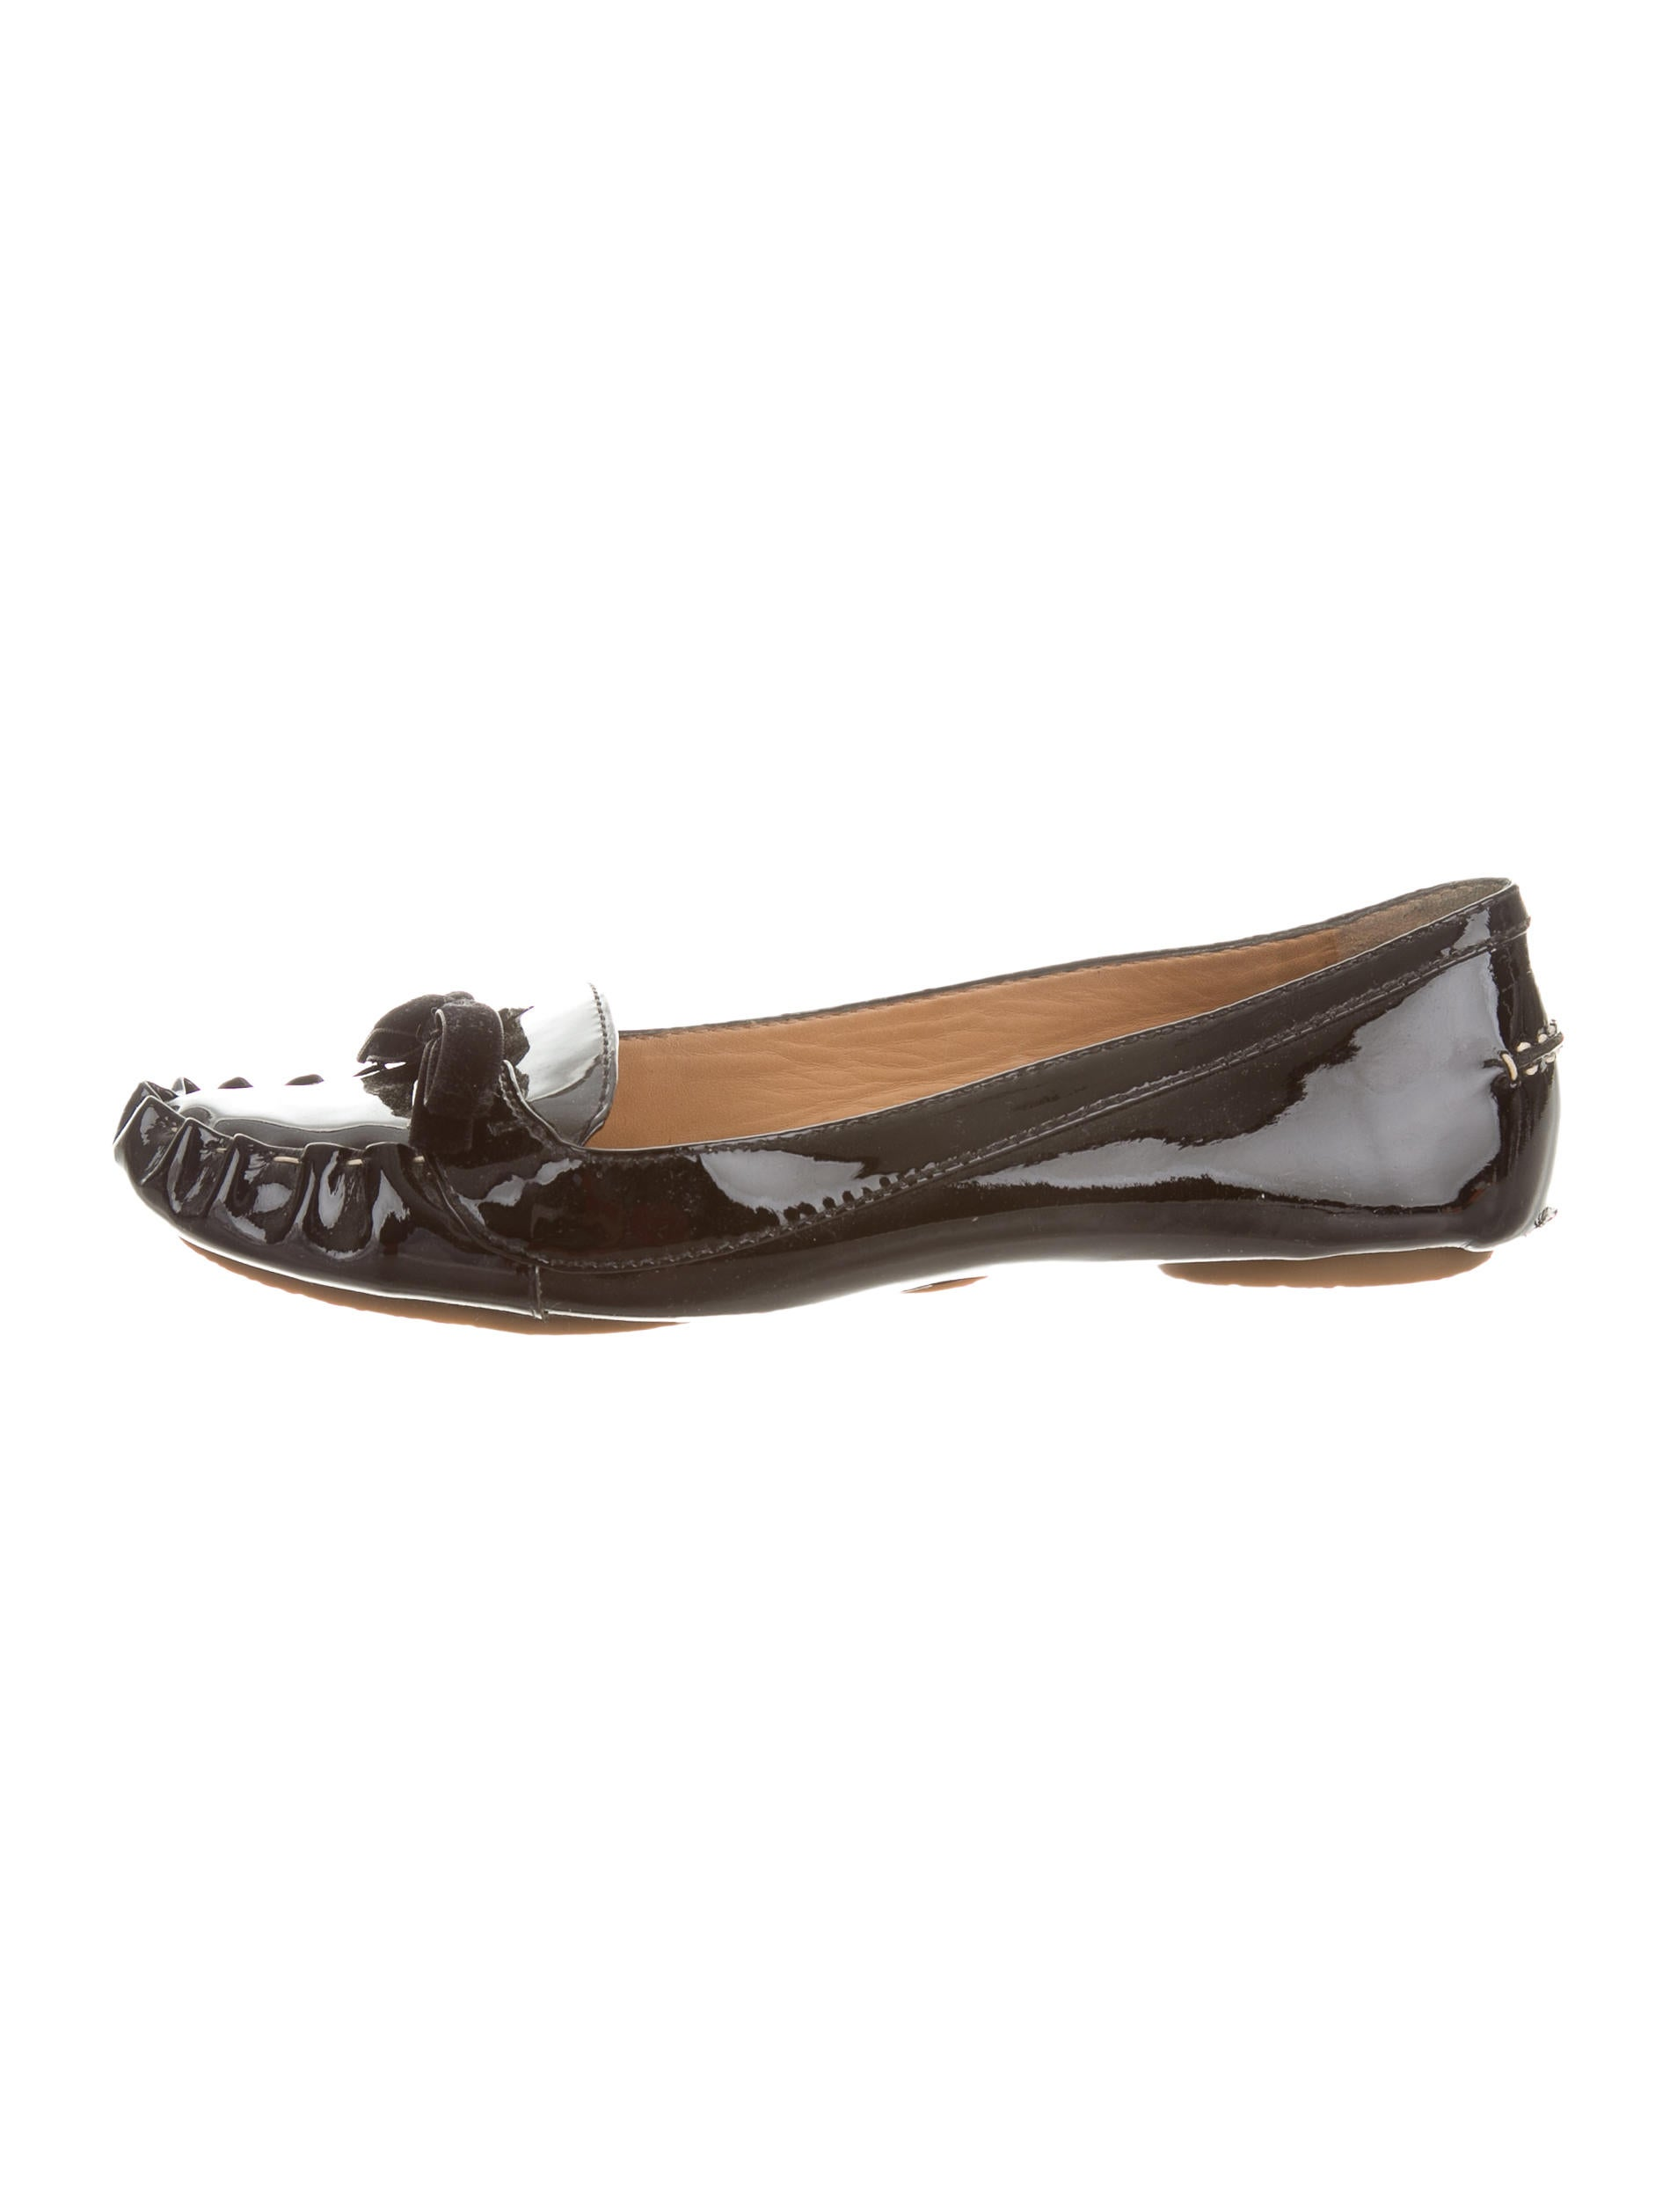 Kate spade new york patent leather round toe flats shoes for Kate spade new york flats